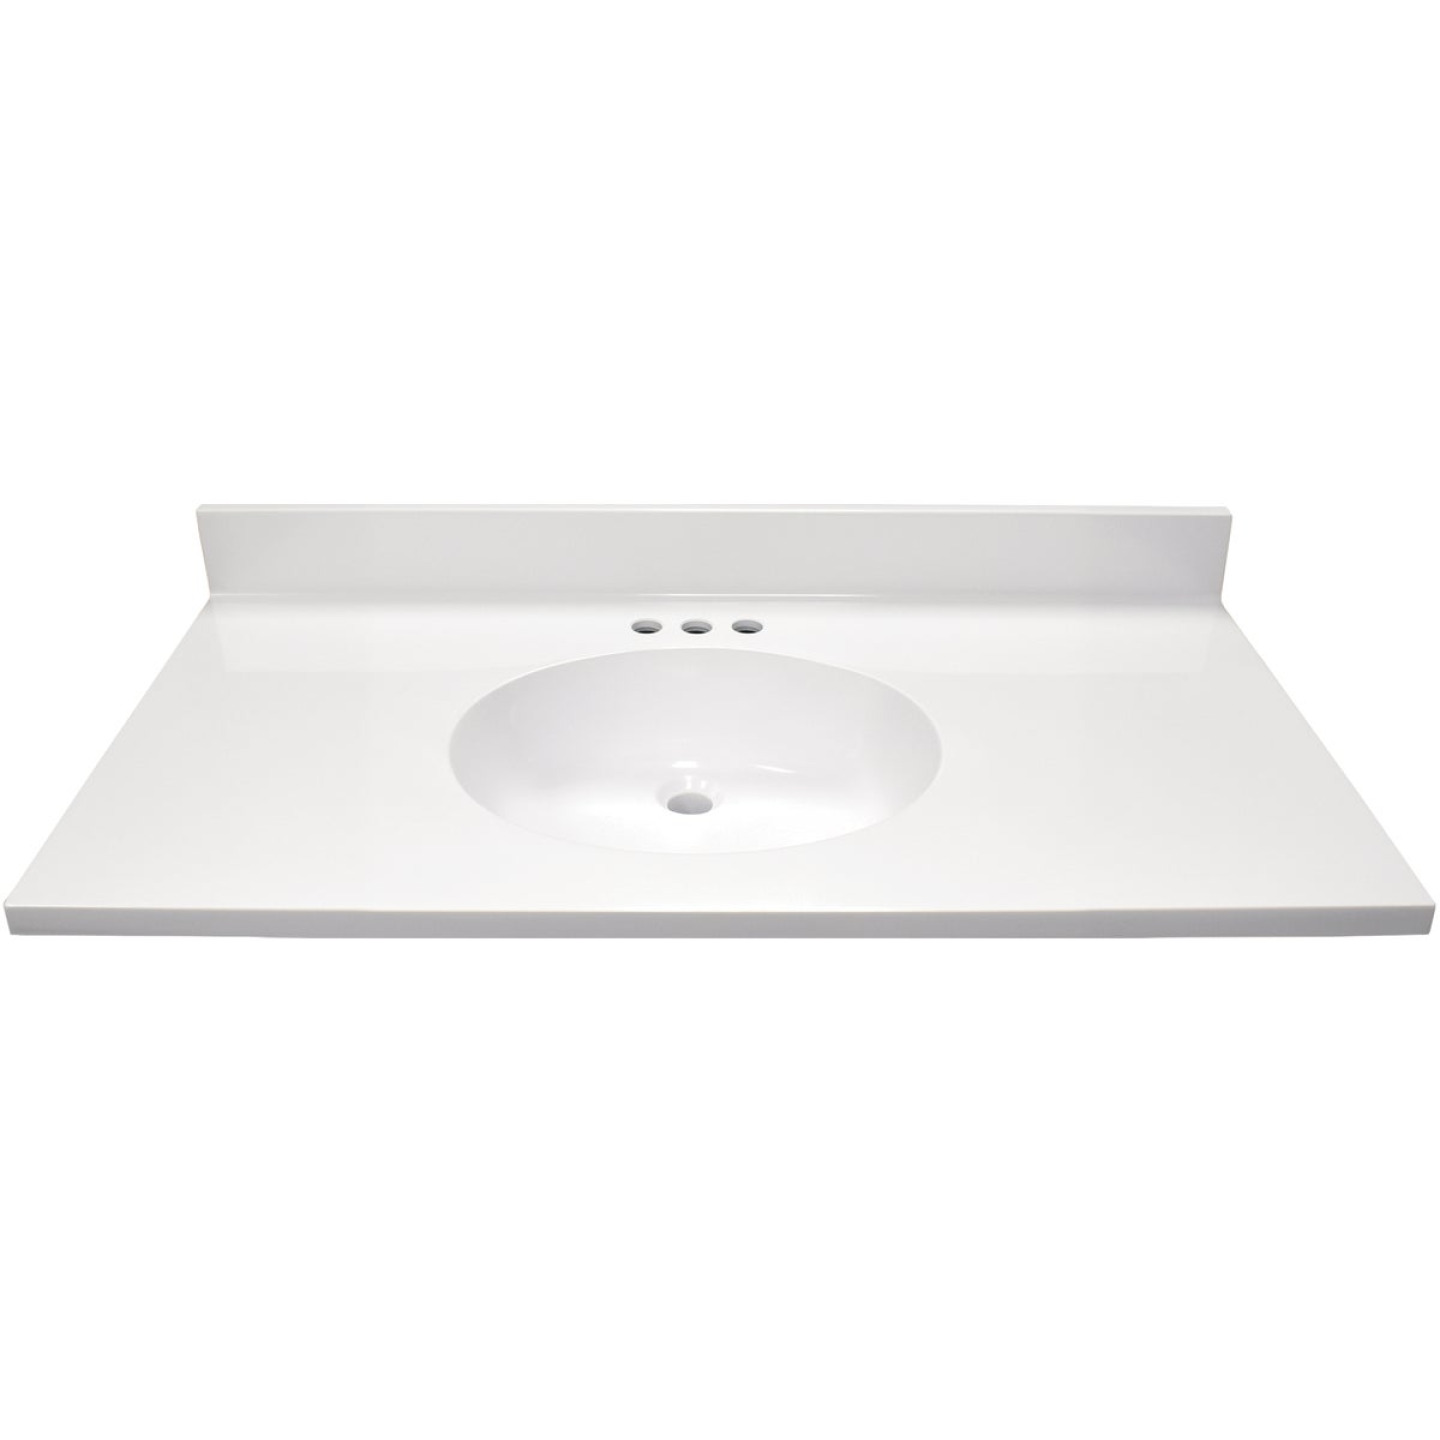 Modular Vanity Tops 37 In. W x 22 In. D Solid White Cultured Marble Flat Edge Vanity Top with Oval Bowl Image 2